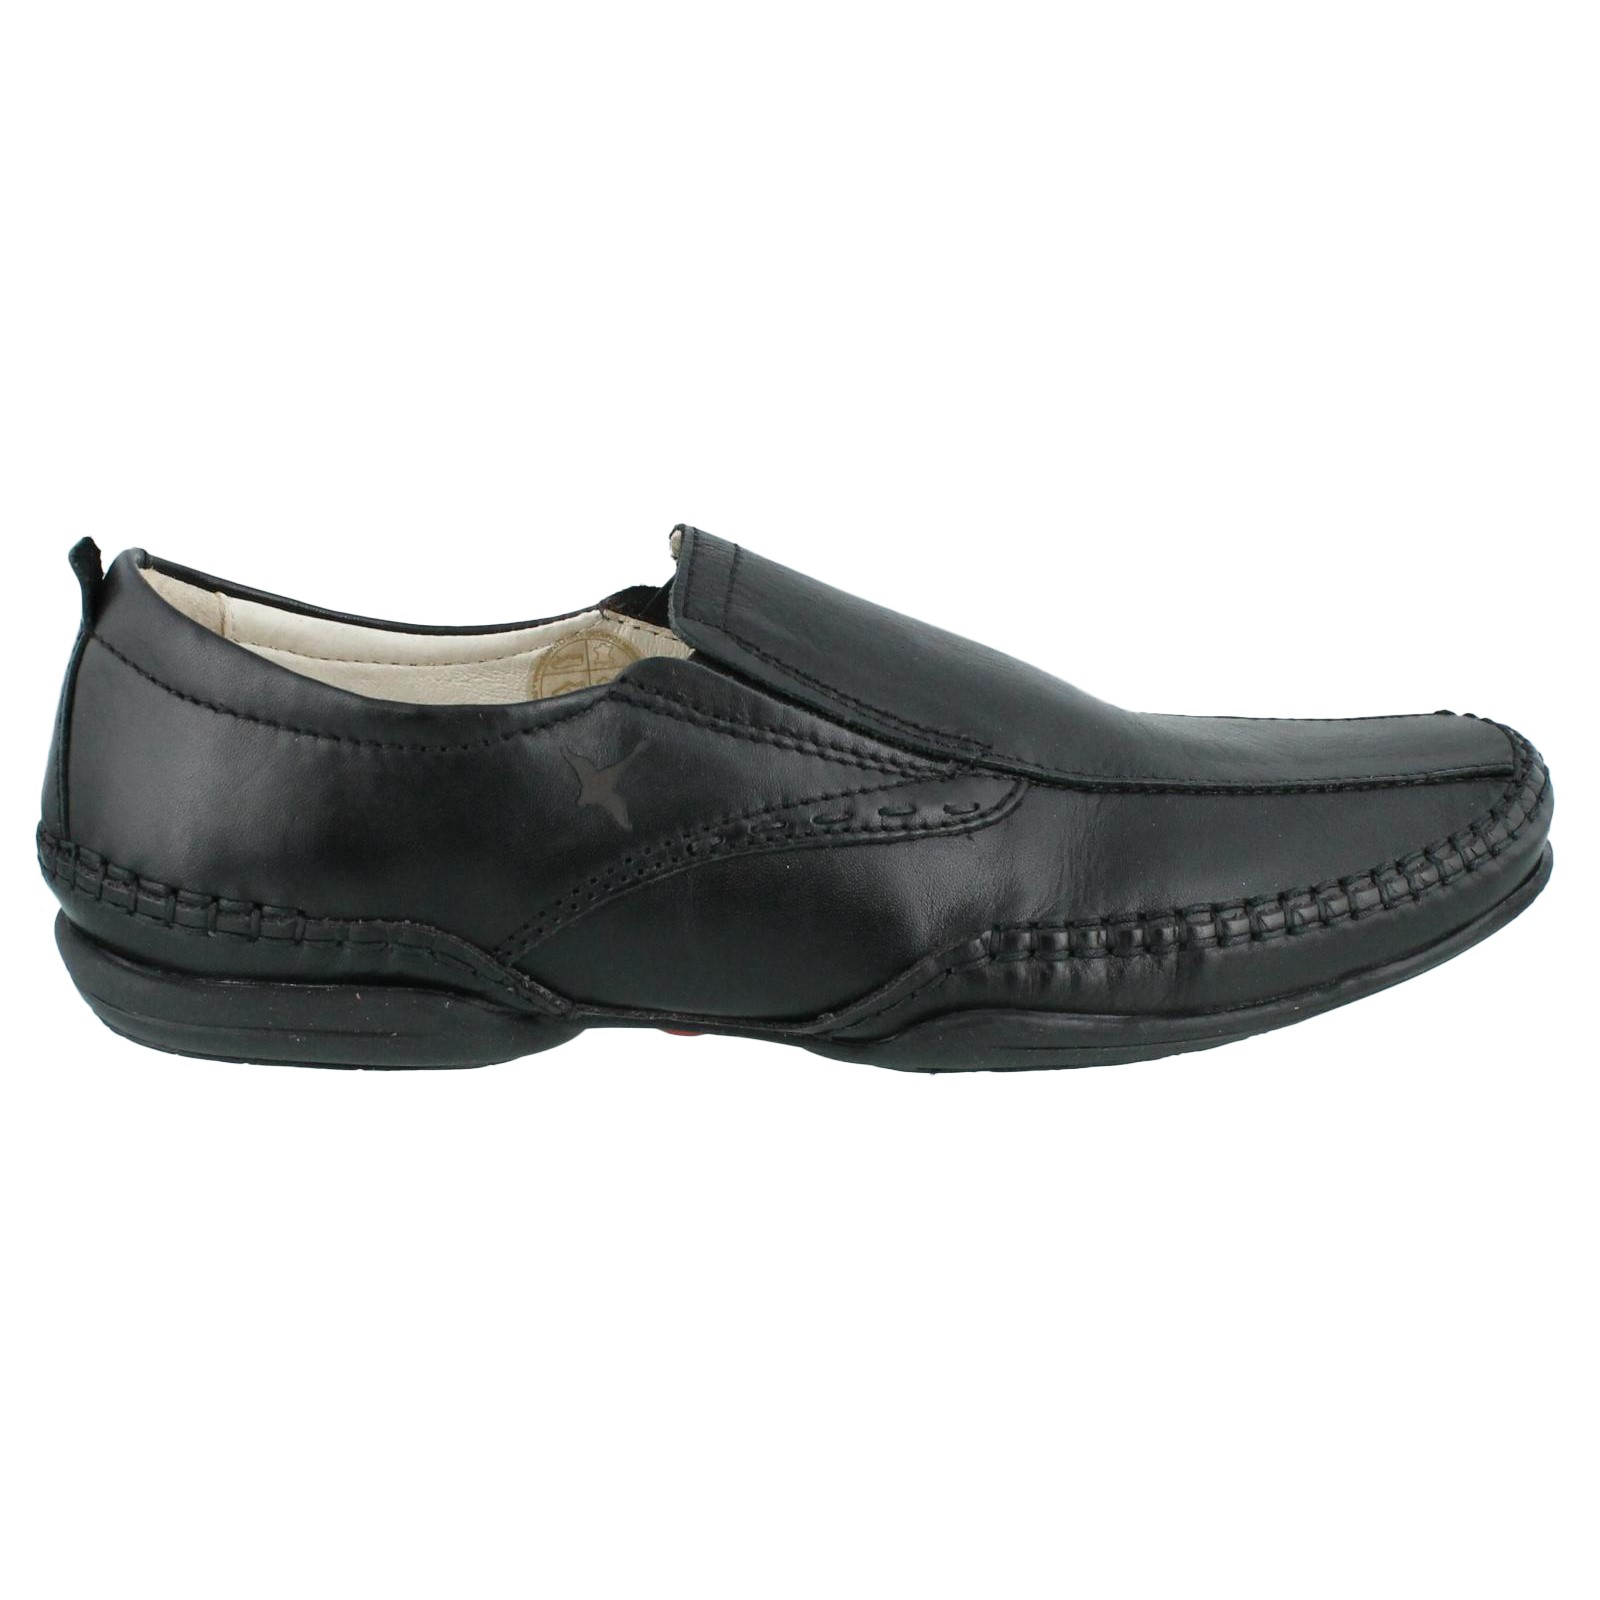 Men's Pikolino, Puerto Rico 03A-6222 Slip-on Loafer